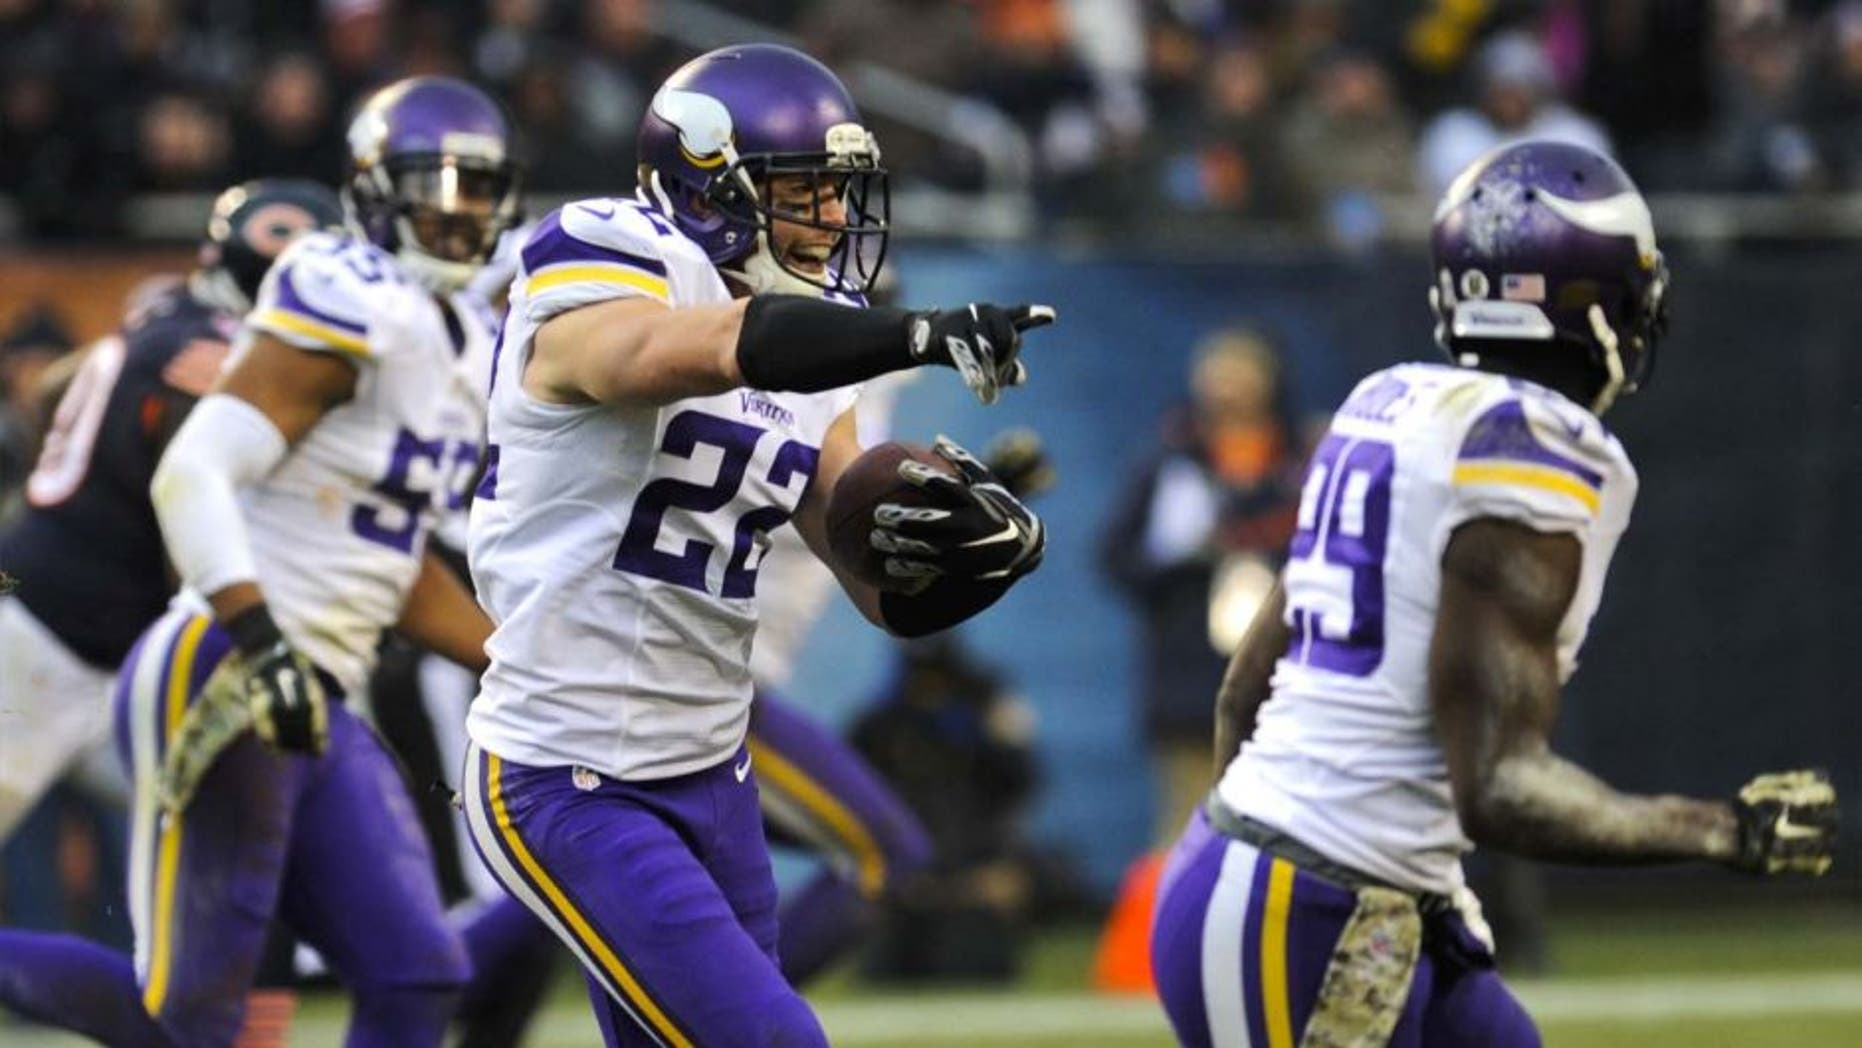 Sunday, November 16: Minnesota Vikings free safety Harrison Smith (center) intercepts a throw from Chicago Bears quarterback Jay Cutler (not pictured) in the second half of their game at Soldier Field. The Bears won 21-13.